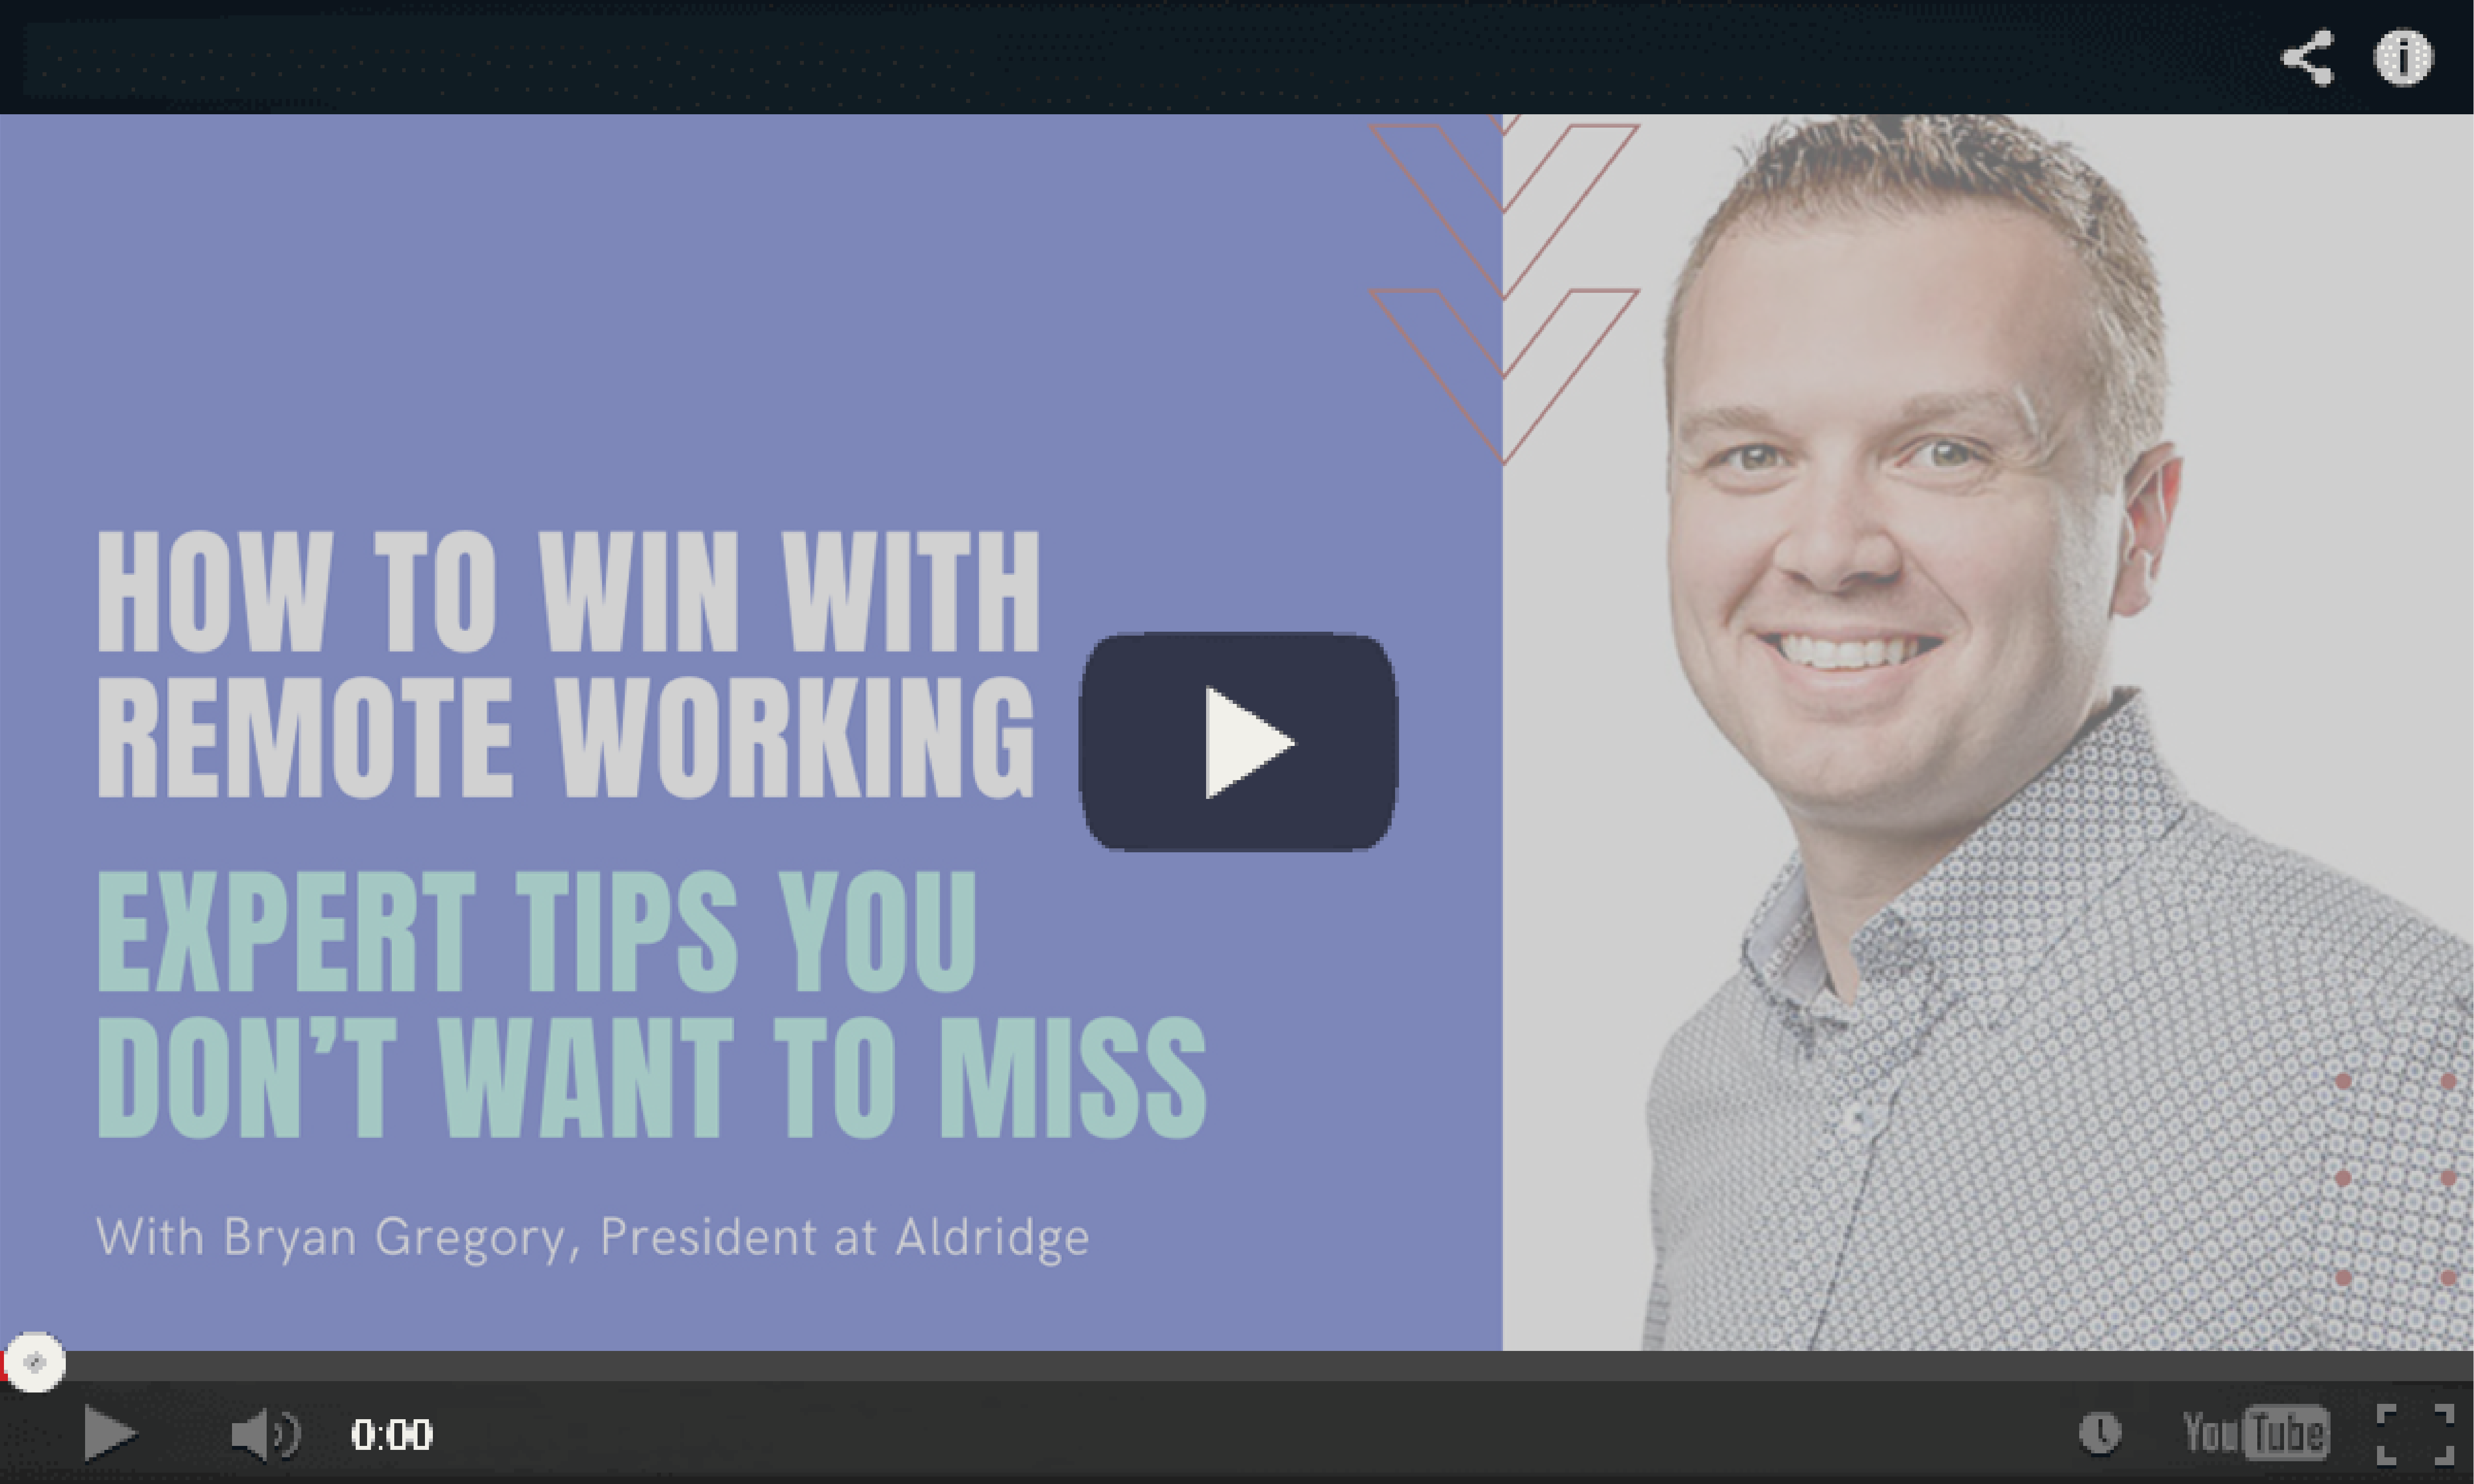 Remote Working Tips Video-02